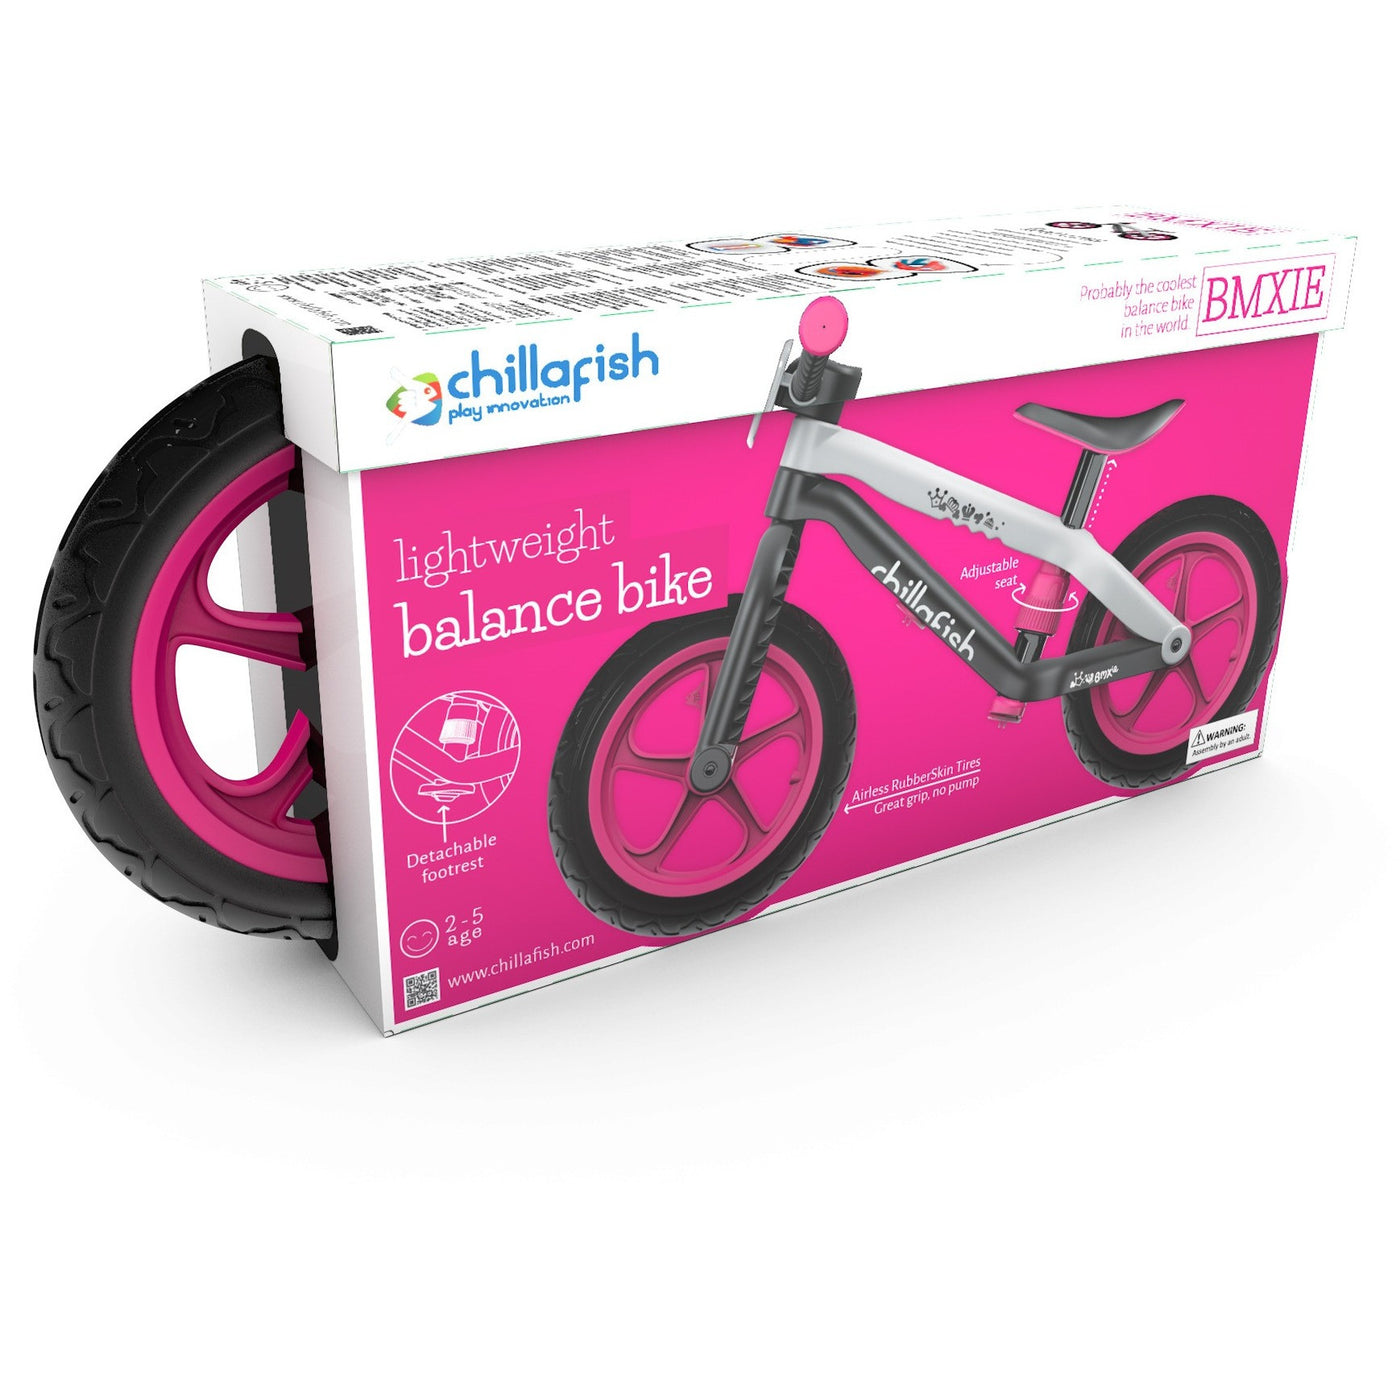 Chillafish BMXie-RS BMX Balance Bike with Airless RubberSkin Tyres